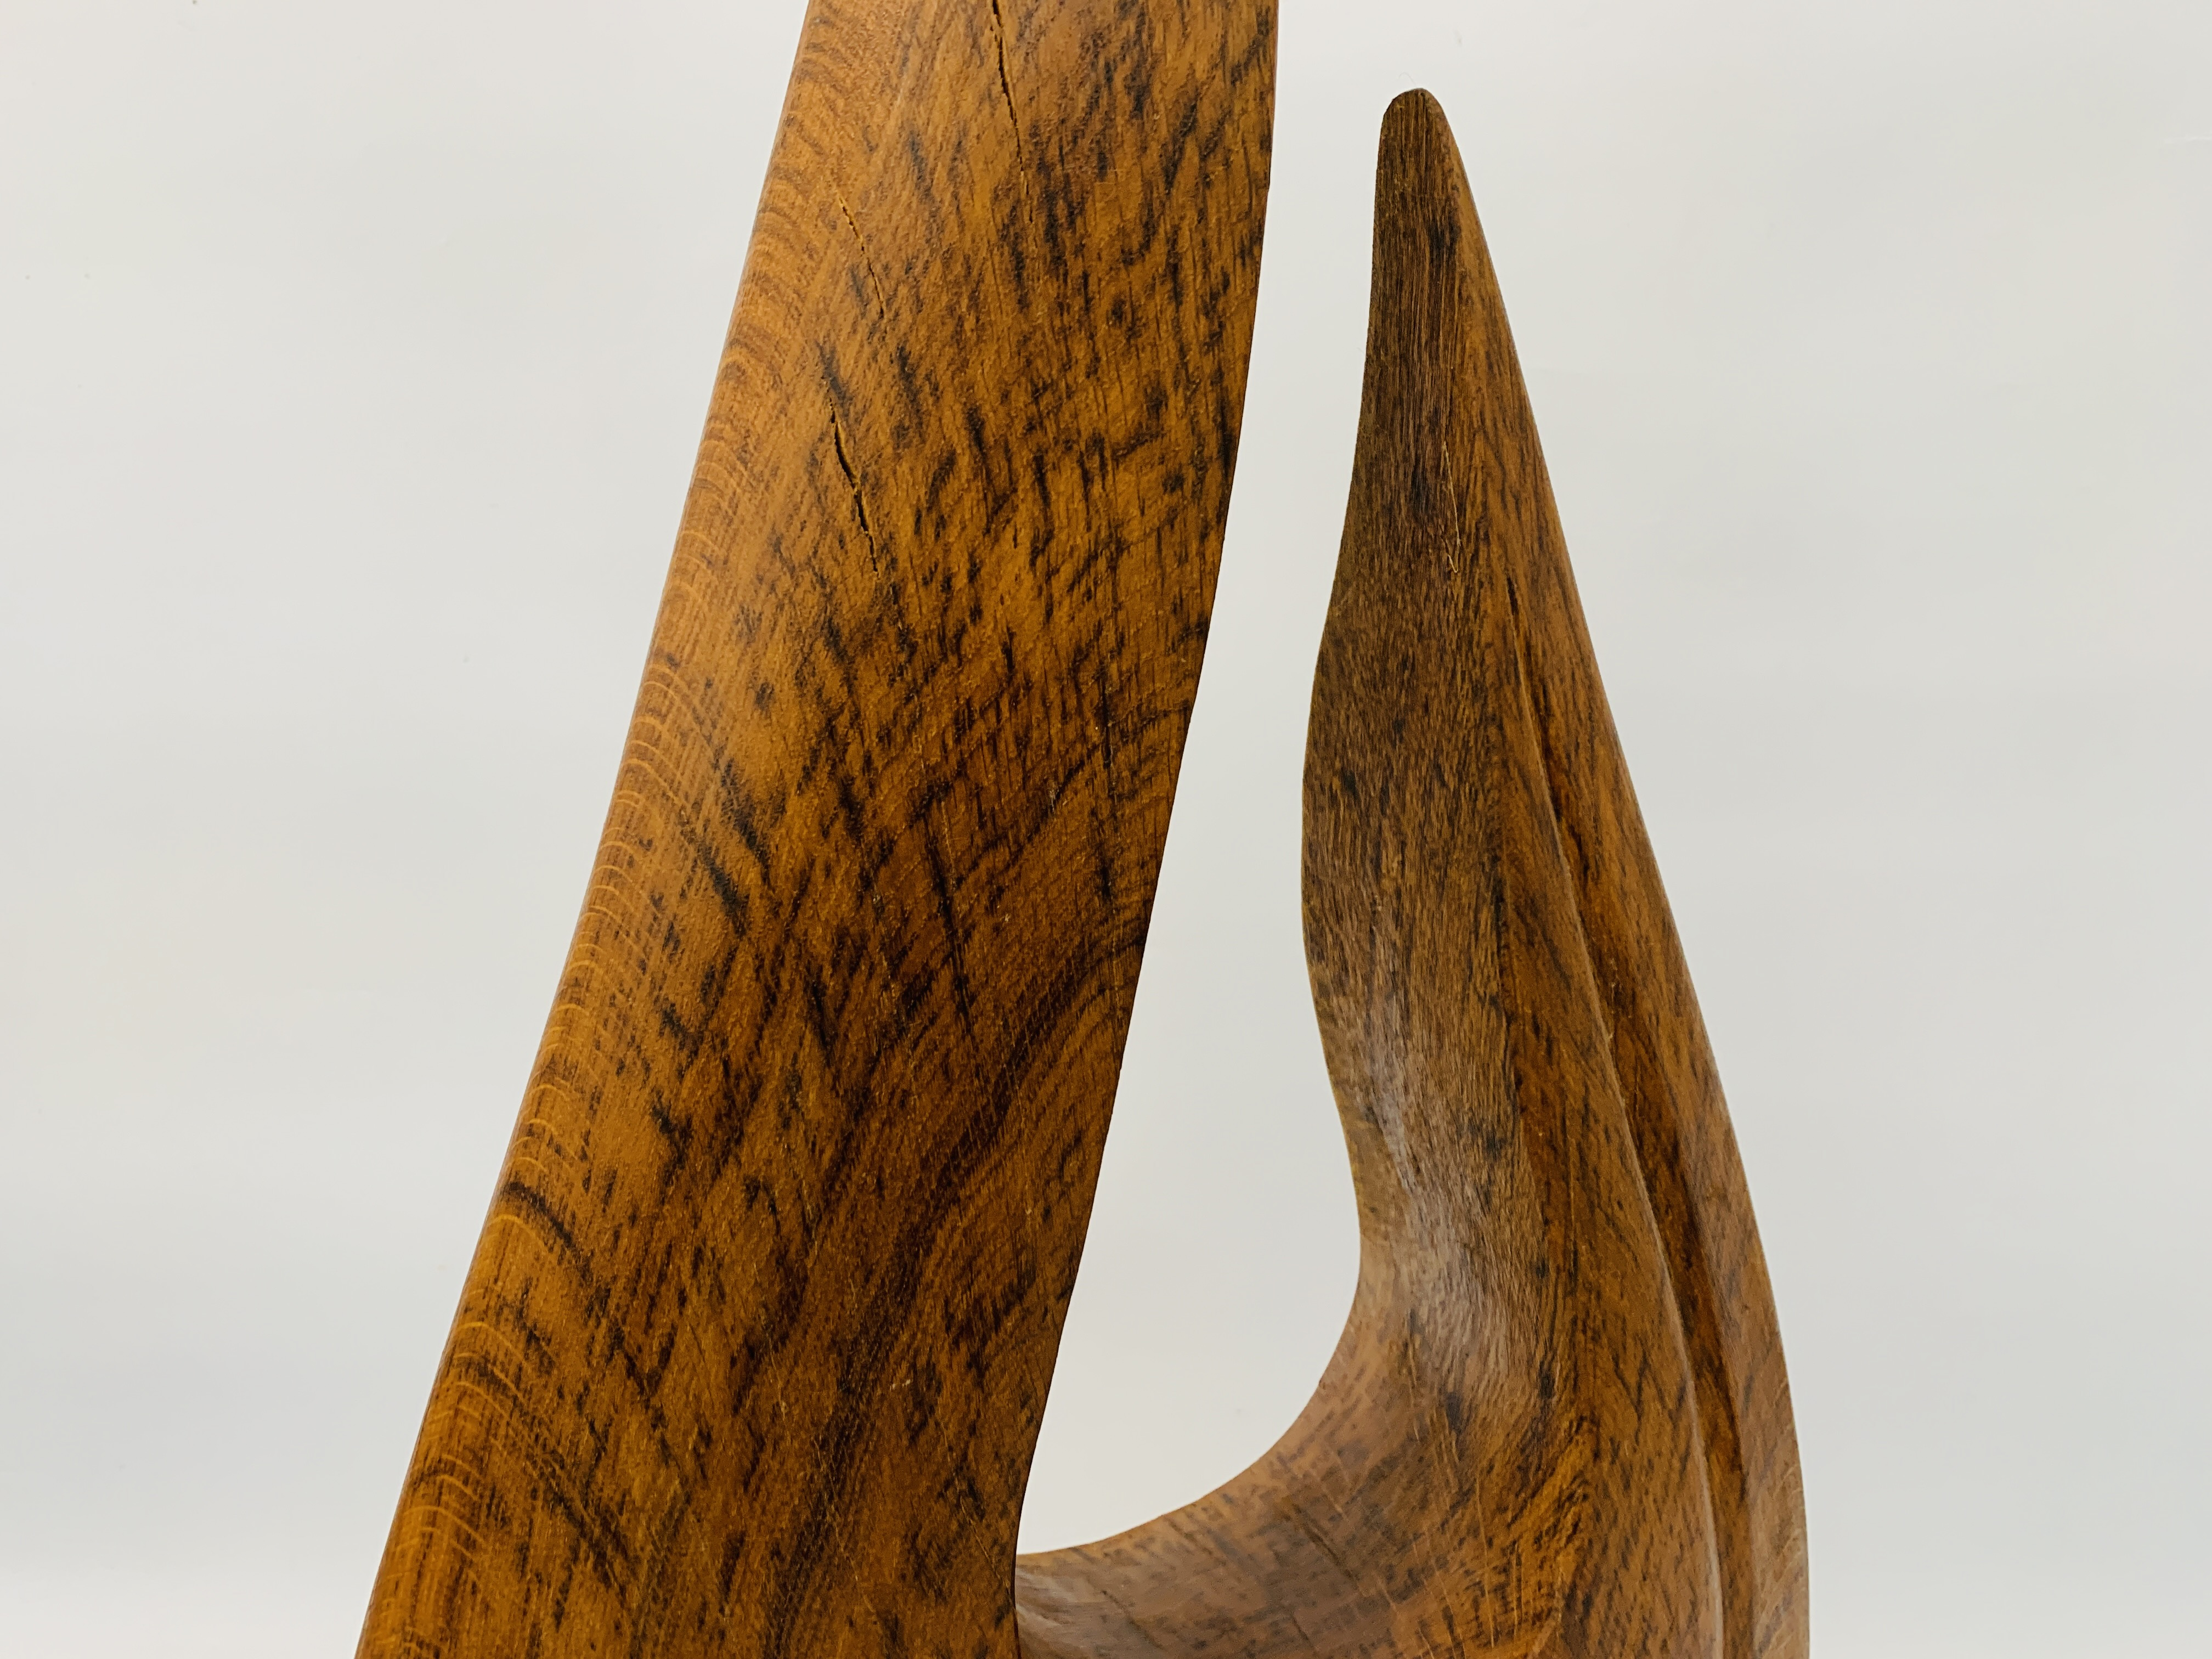 """AN OAK ABSTRACT SCULPTURE OF """"U"""" SHAPED FORM - HEIGHT 83 CM. - Image 5 of 8"""